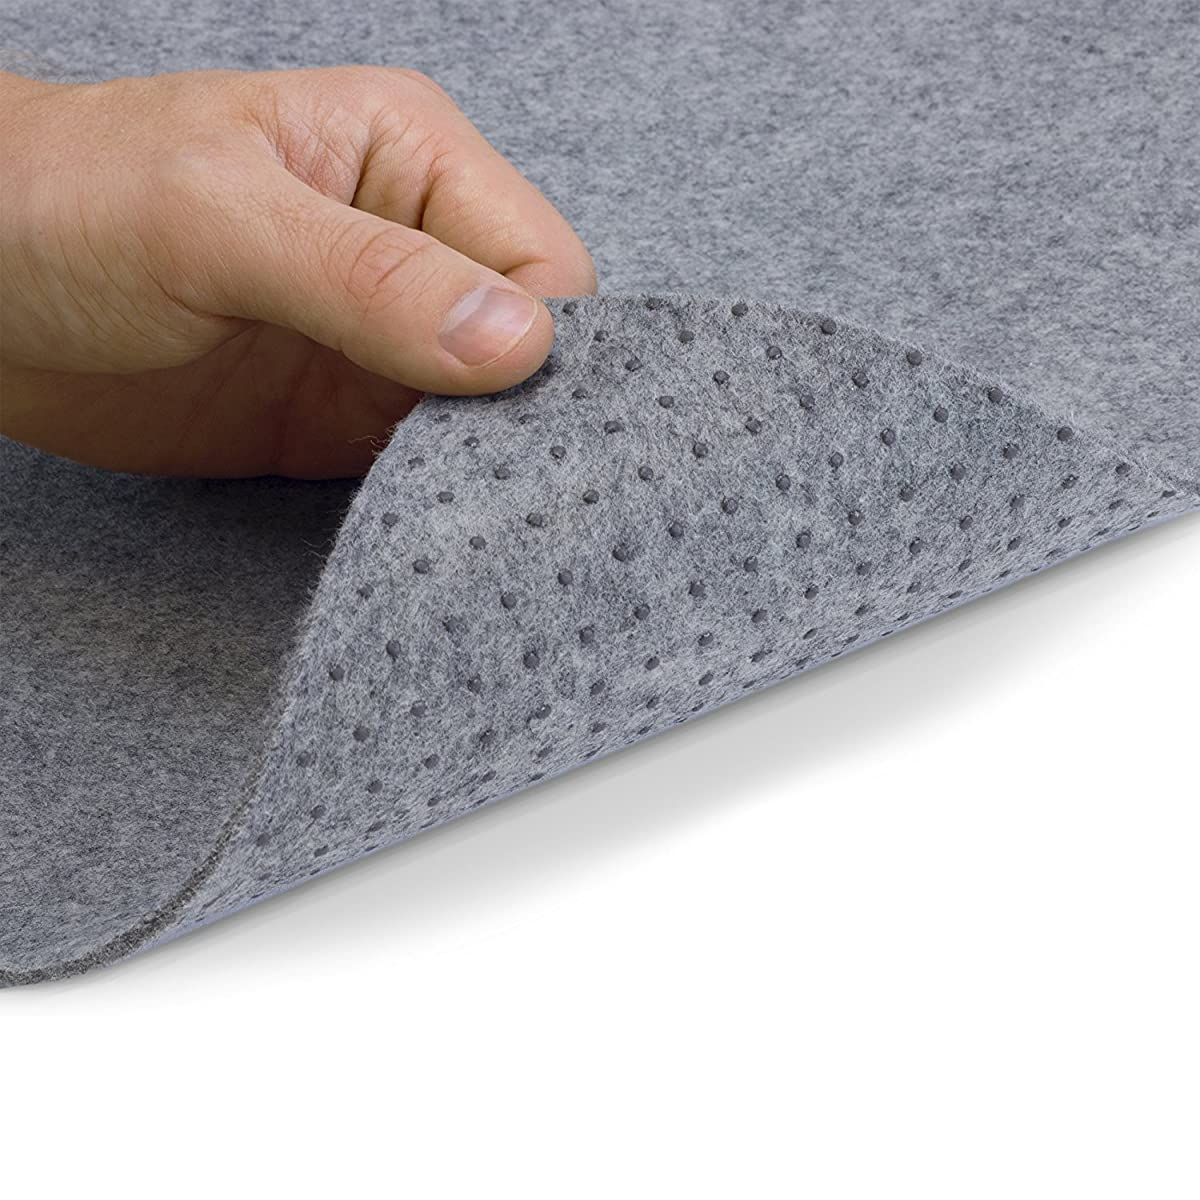 Area Rug Pad With Grip Tight Technology 9x12 Non Slip